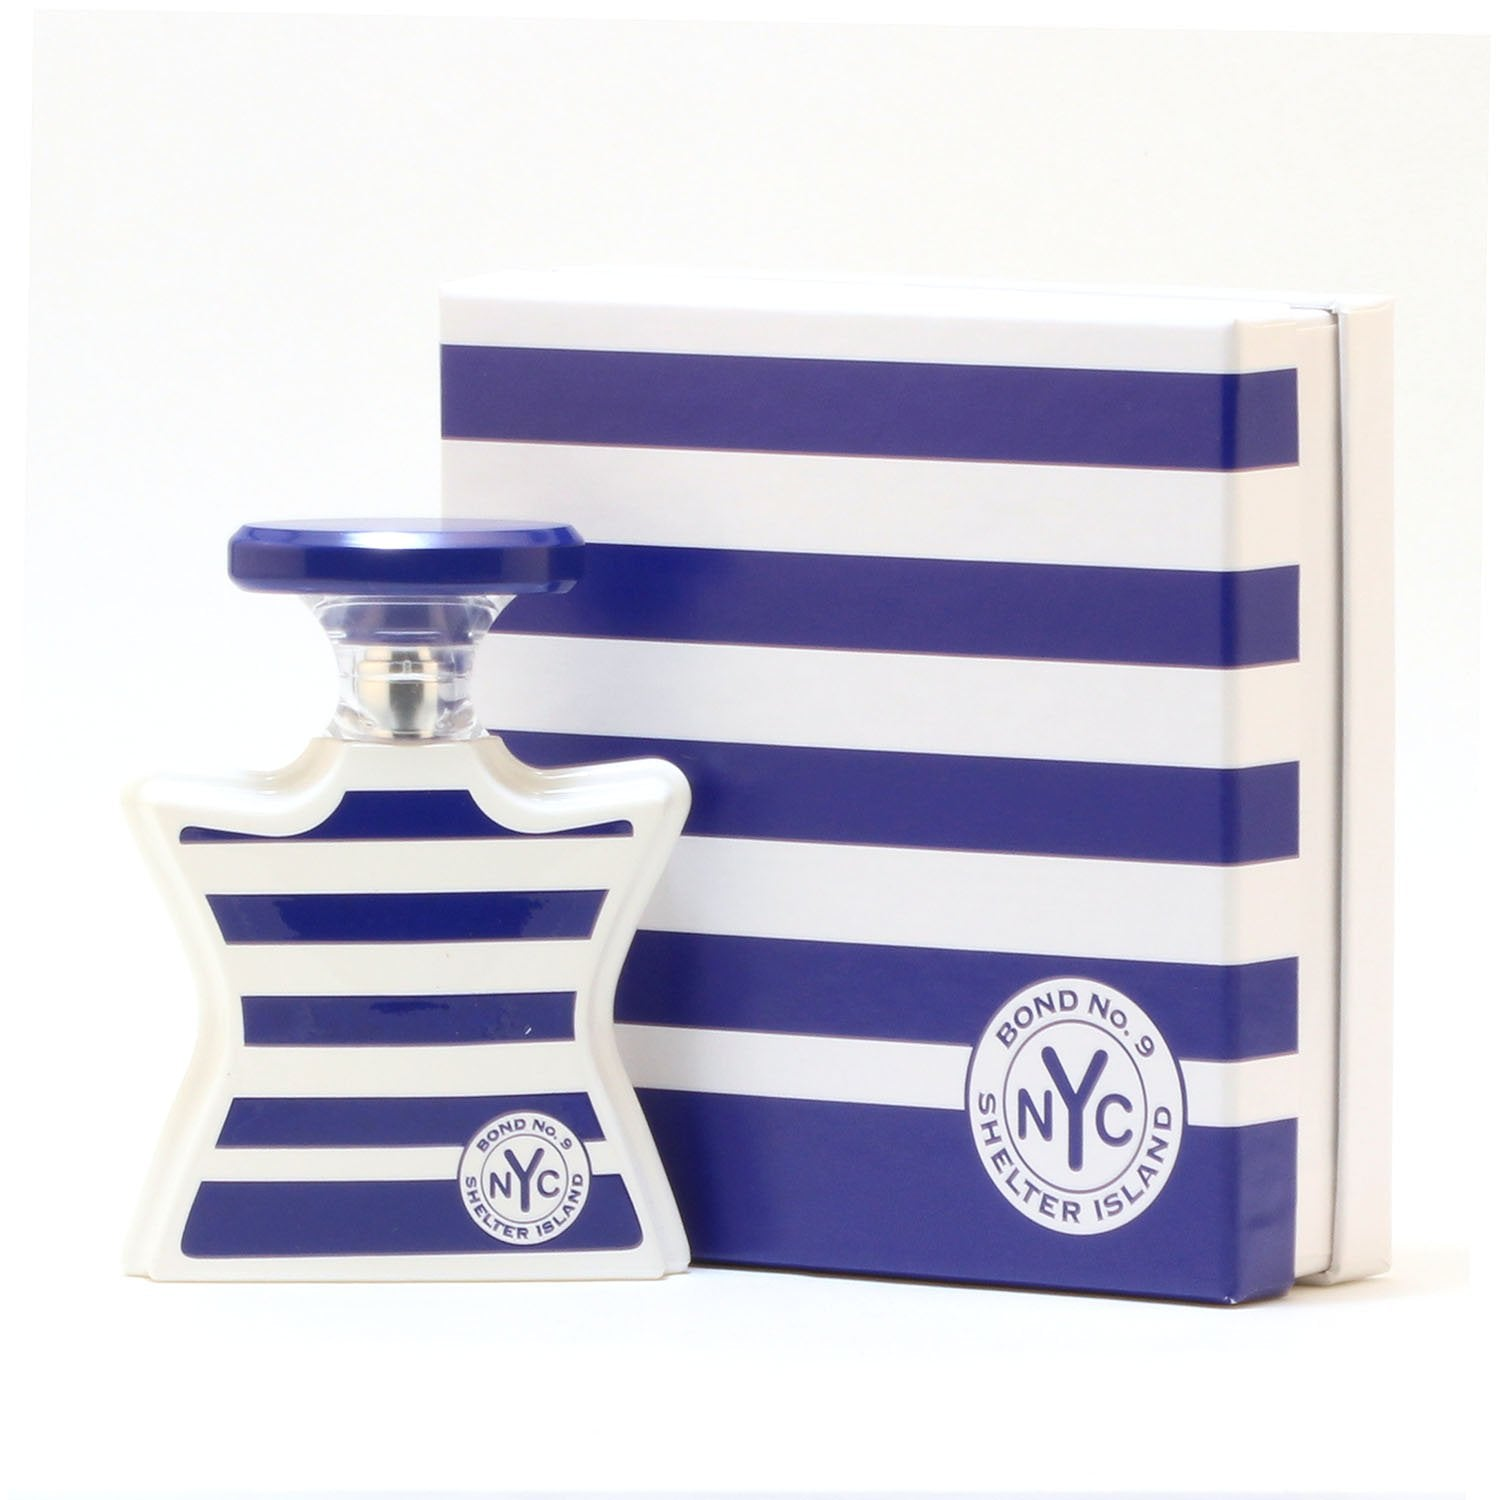 Perfume - BOND NO 9 SHELTER ISLAND UNISEX - EAU DE PARFUM SPRAY